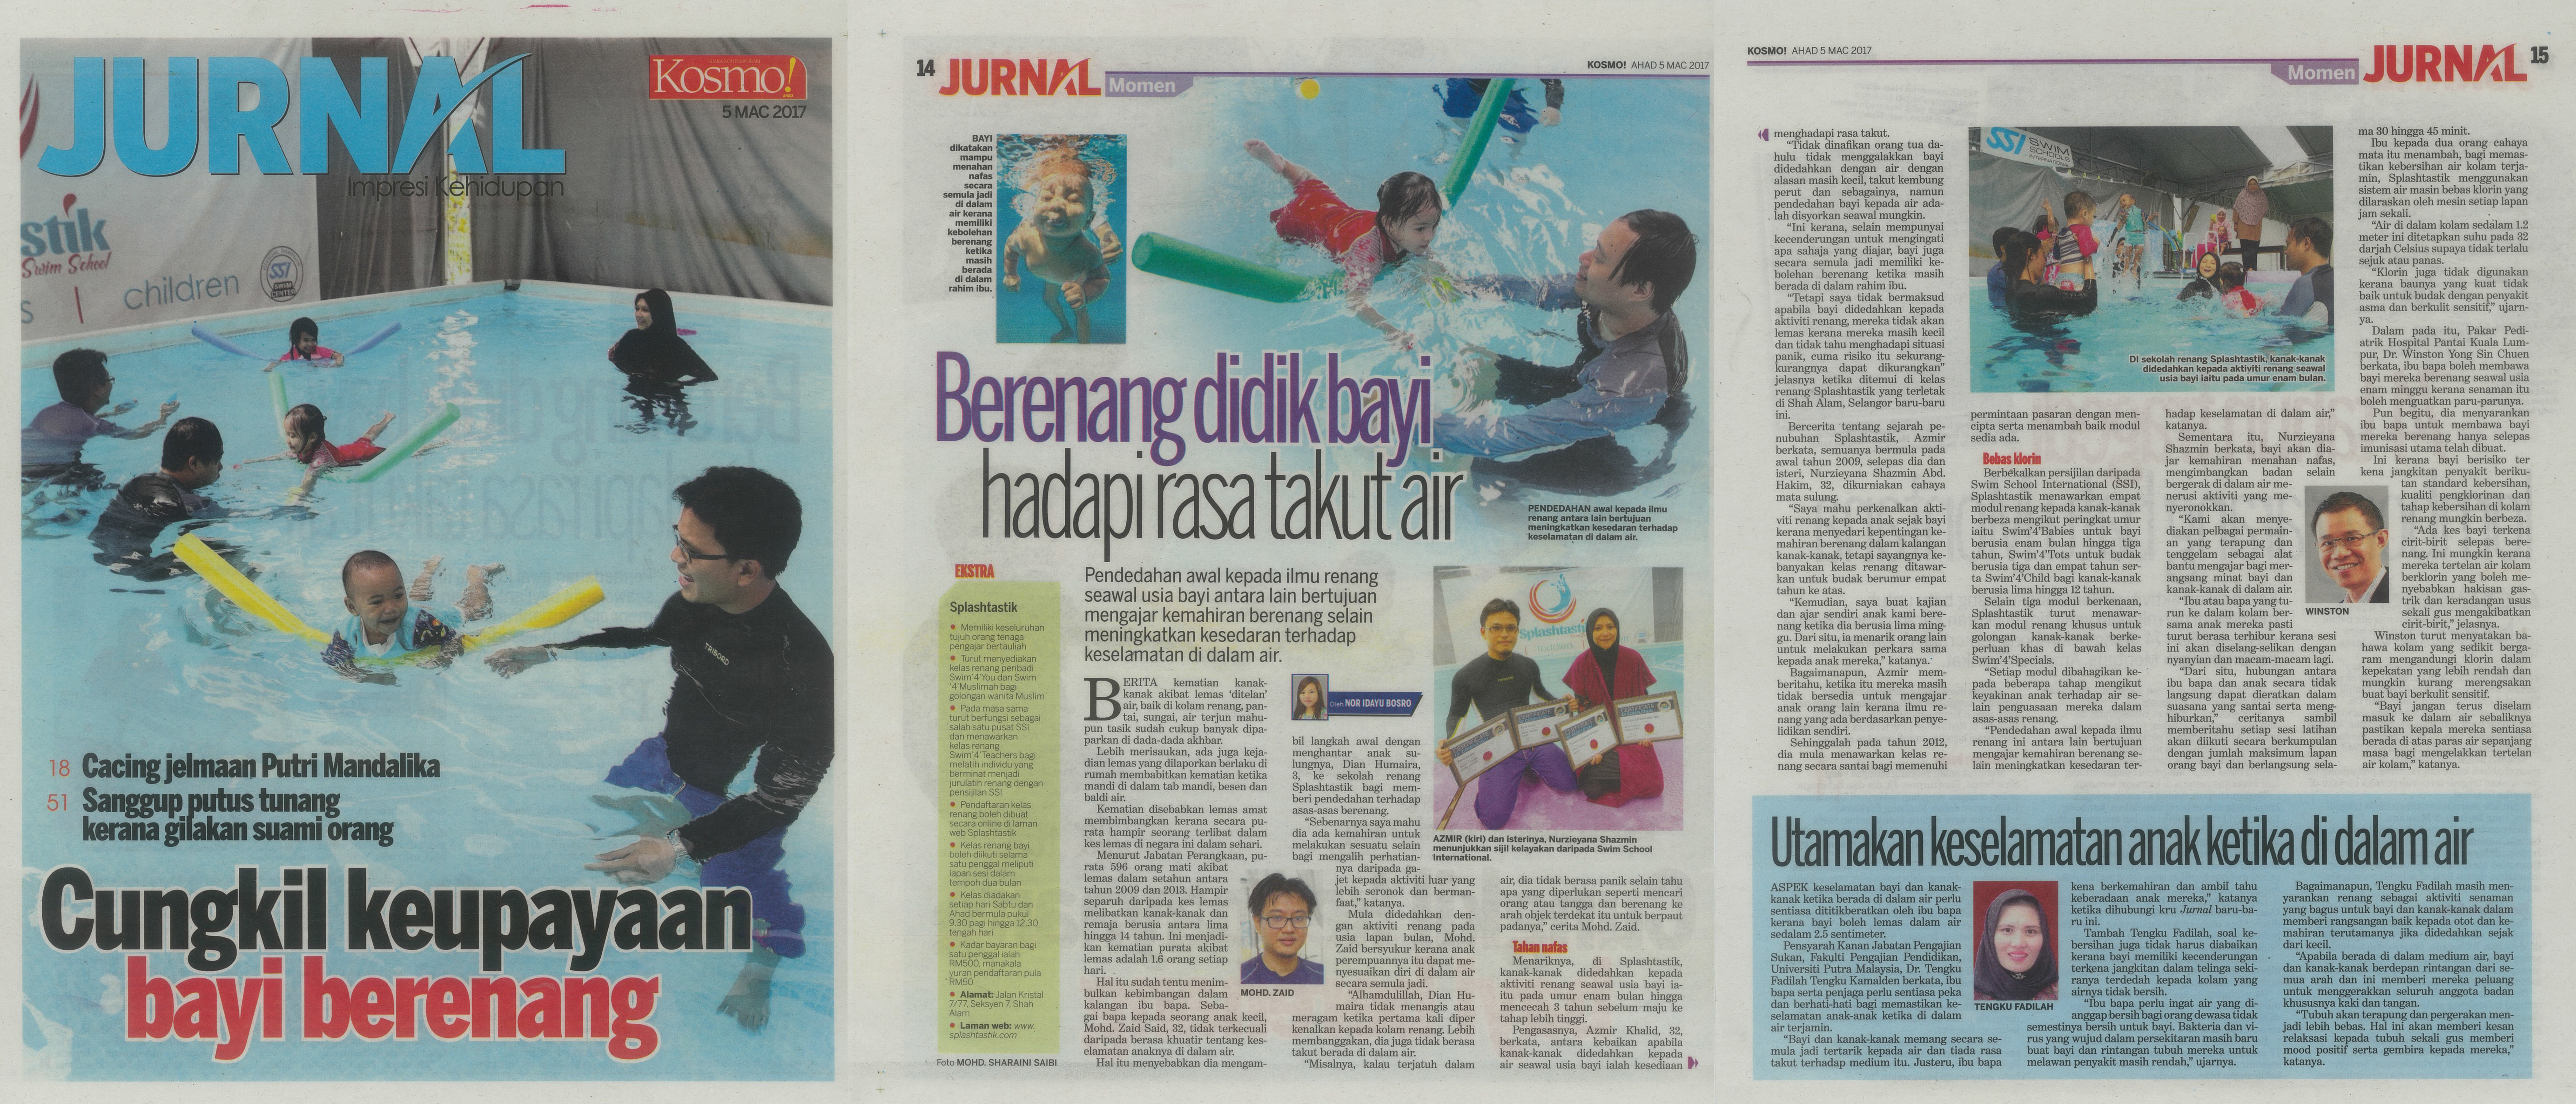 Kosmo 5 March 2017